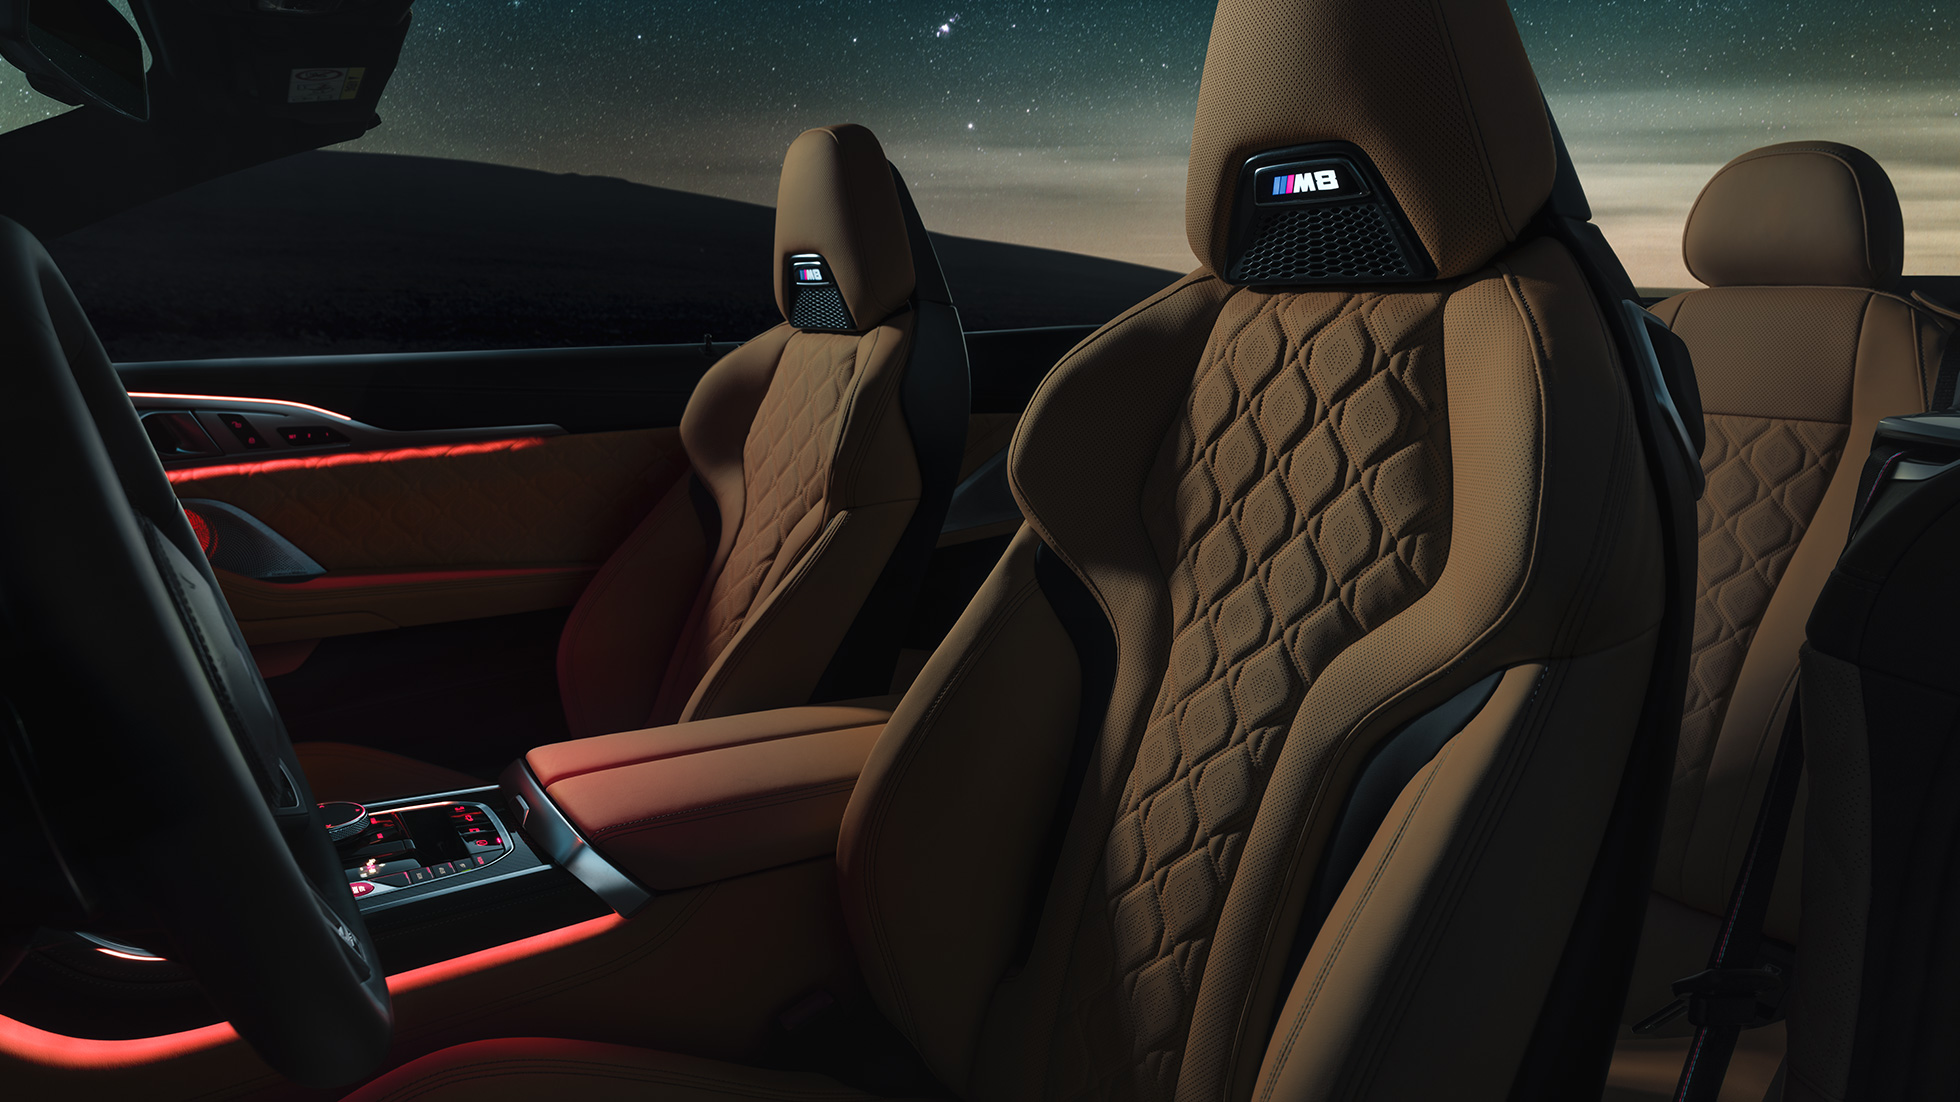 BMW M8 Competition Convertible with open softtop under starry sky, interior with M Sport seats in leather 'Merino' and red ambient light.